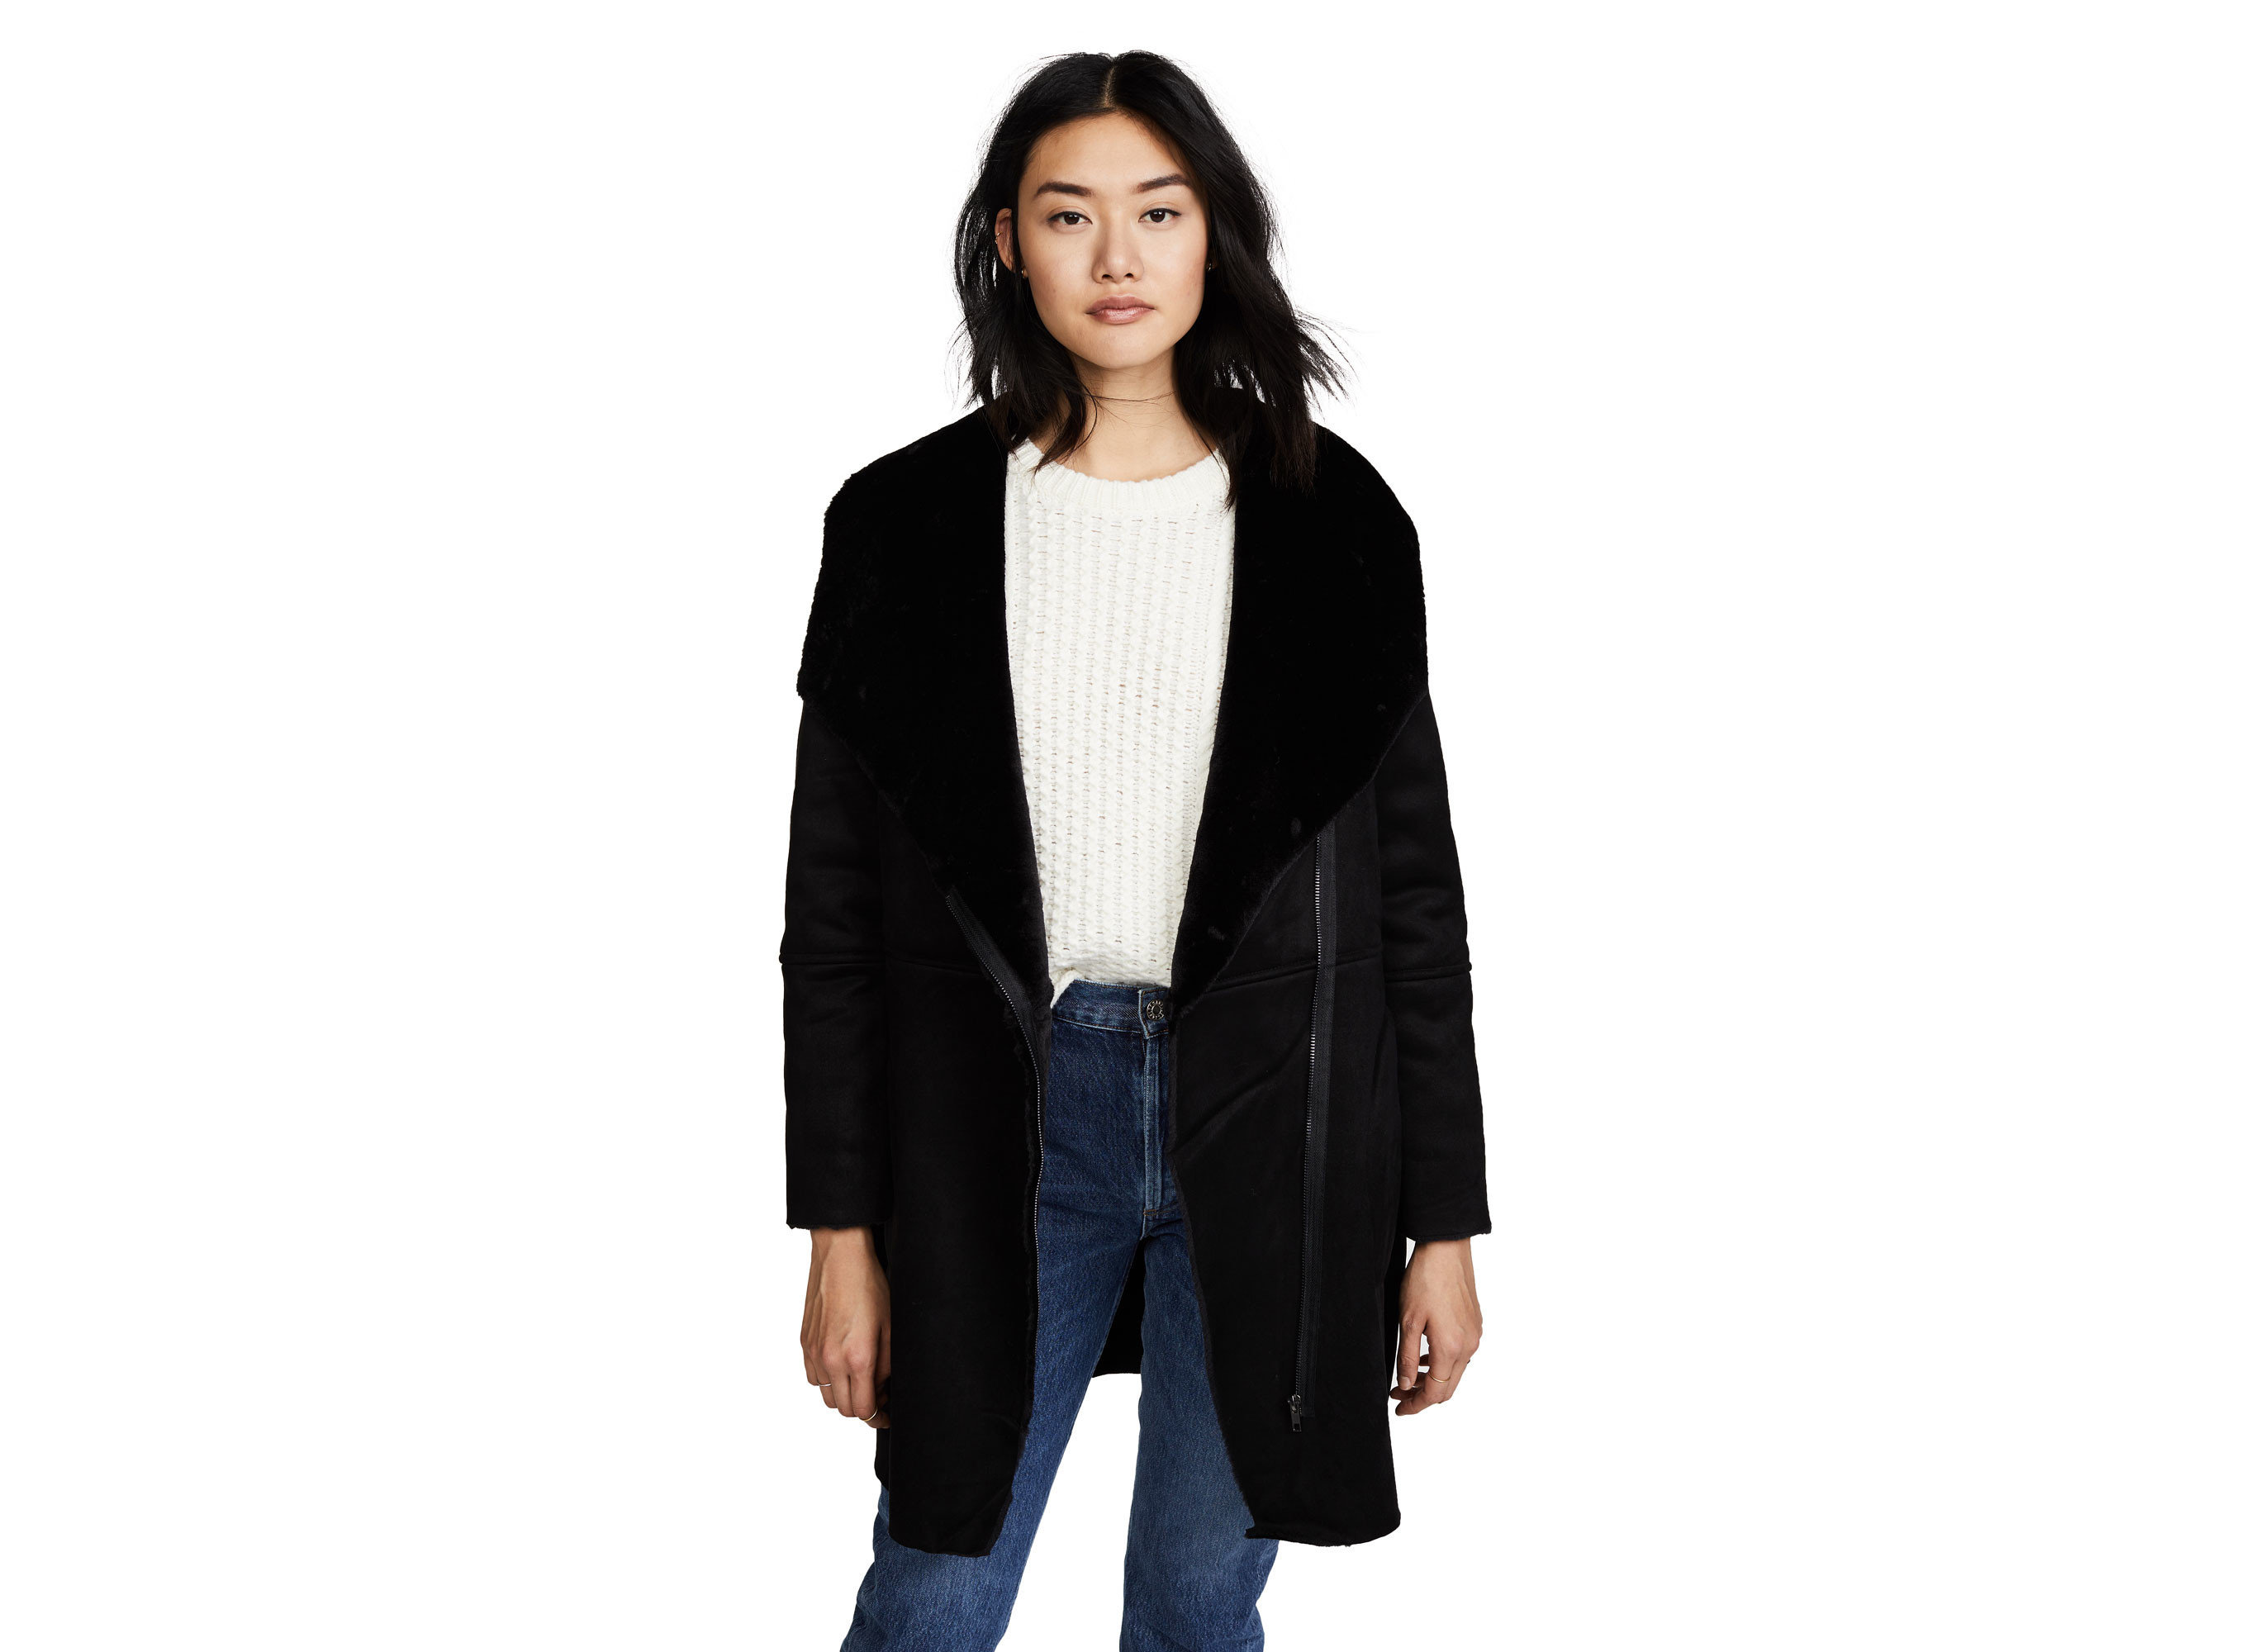 Style + Design Travel Shop clothing person suit posing standing coat wearing outerwear fur fur clothing jacket fashion model sleeve cardigan dressed